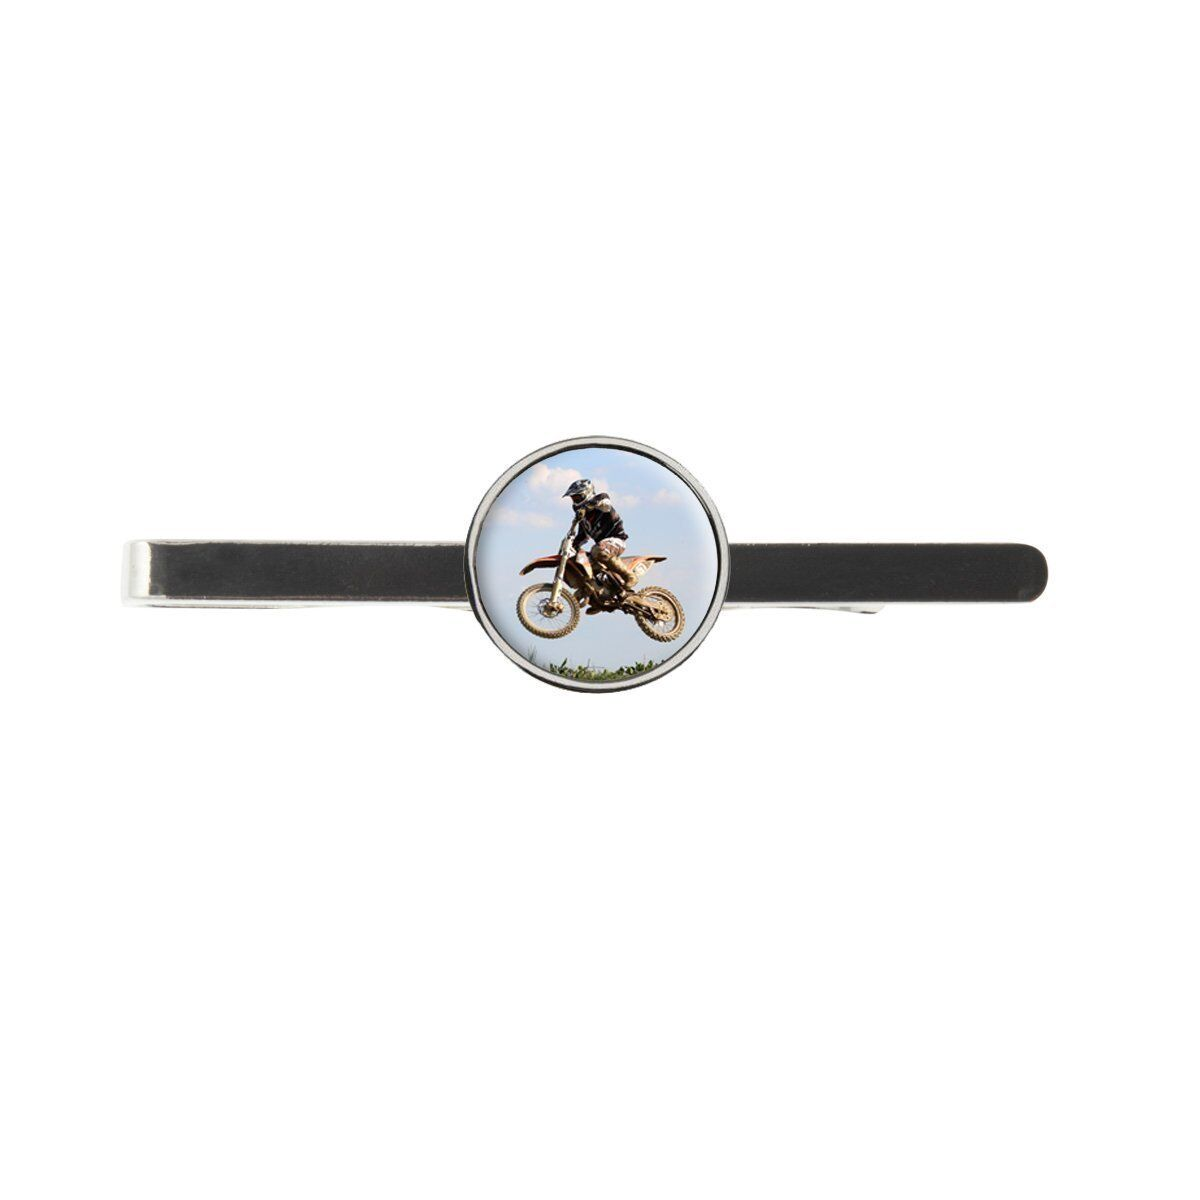 Motocross Mens Tie Slide Ideal Birthday Wedding Or Father Day Gift C391